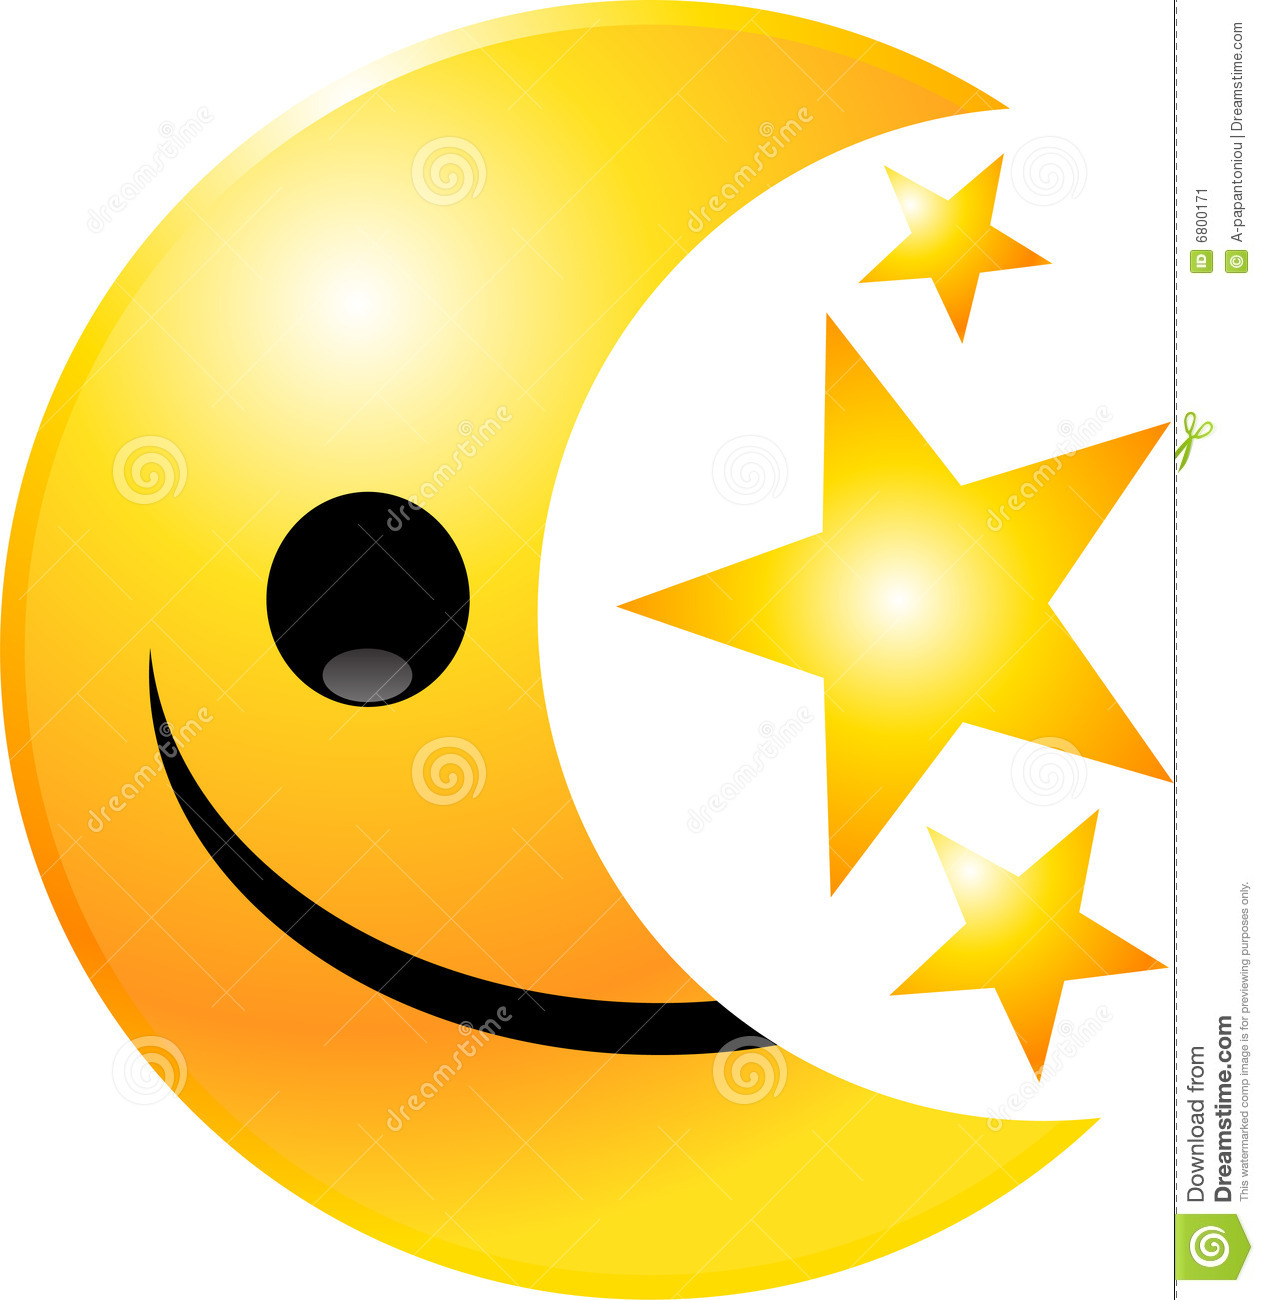 Clipart smiley face thumbs up royalty free stock Happy Face Thumbs Up Clipart   Clipart Panda - Free Clipart Images royalty free stock